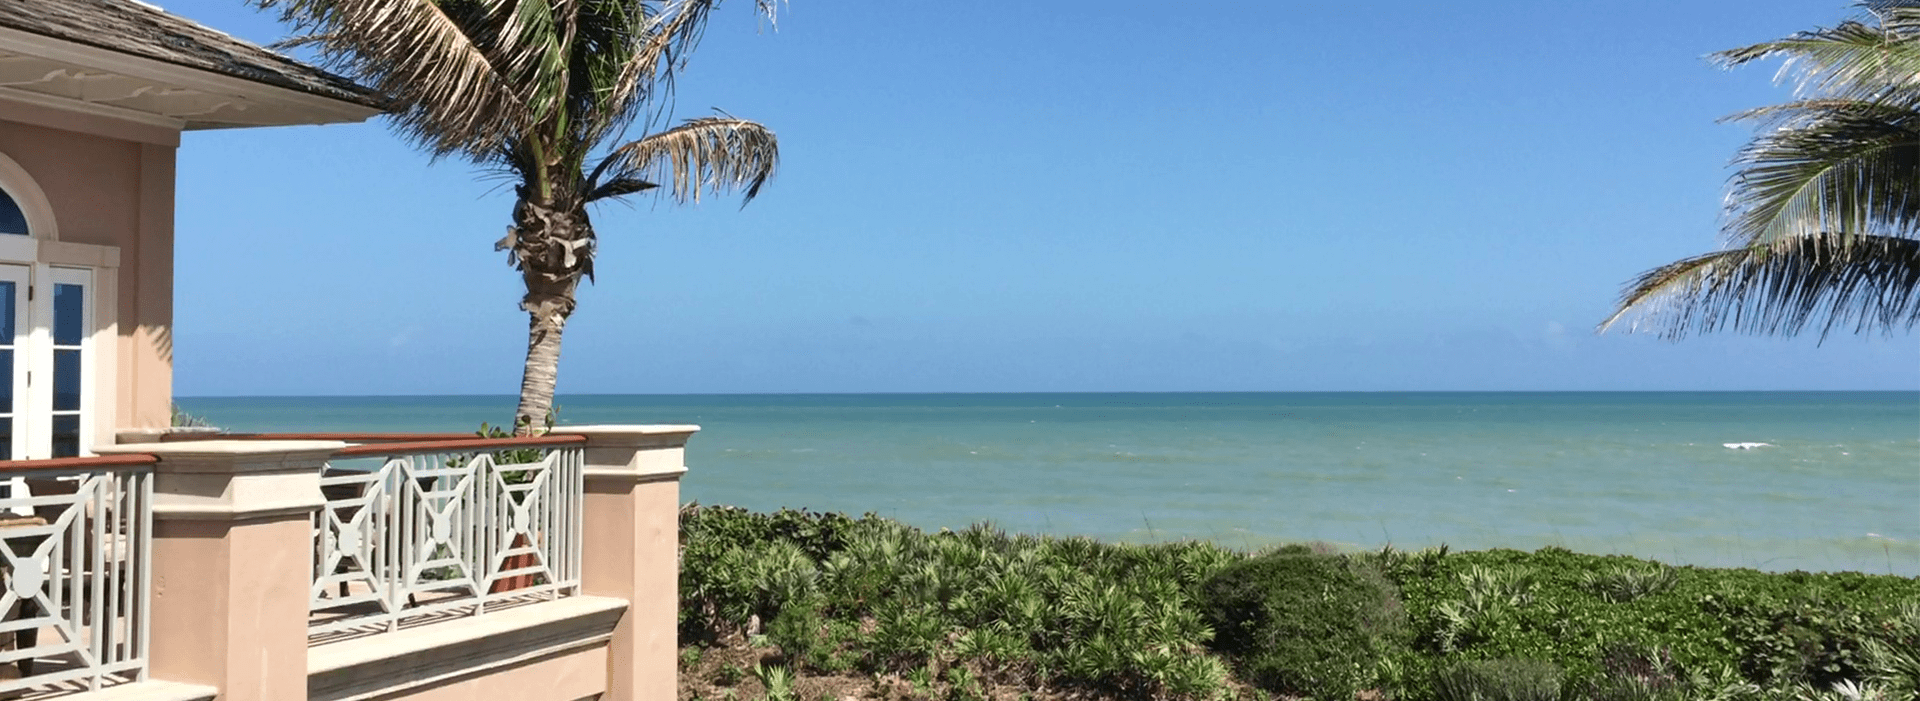 Orchid Island has the best views in Vero Beach Florida